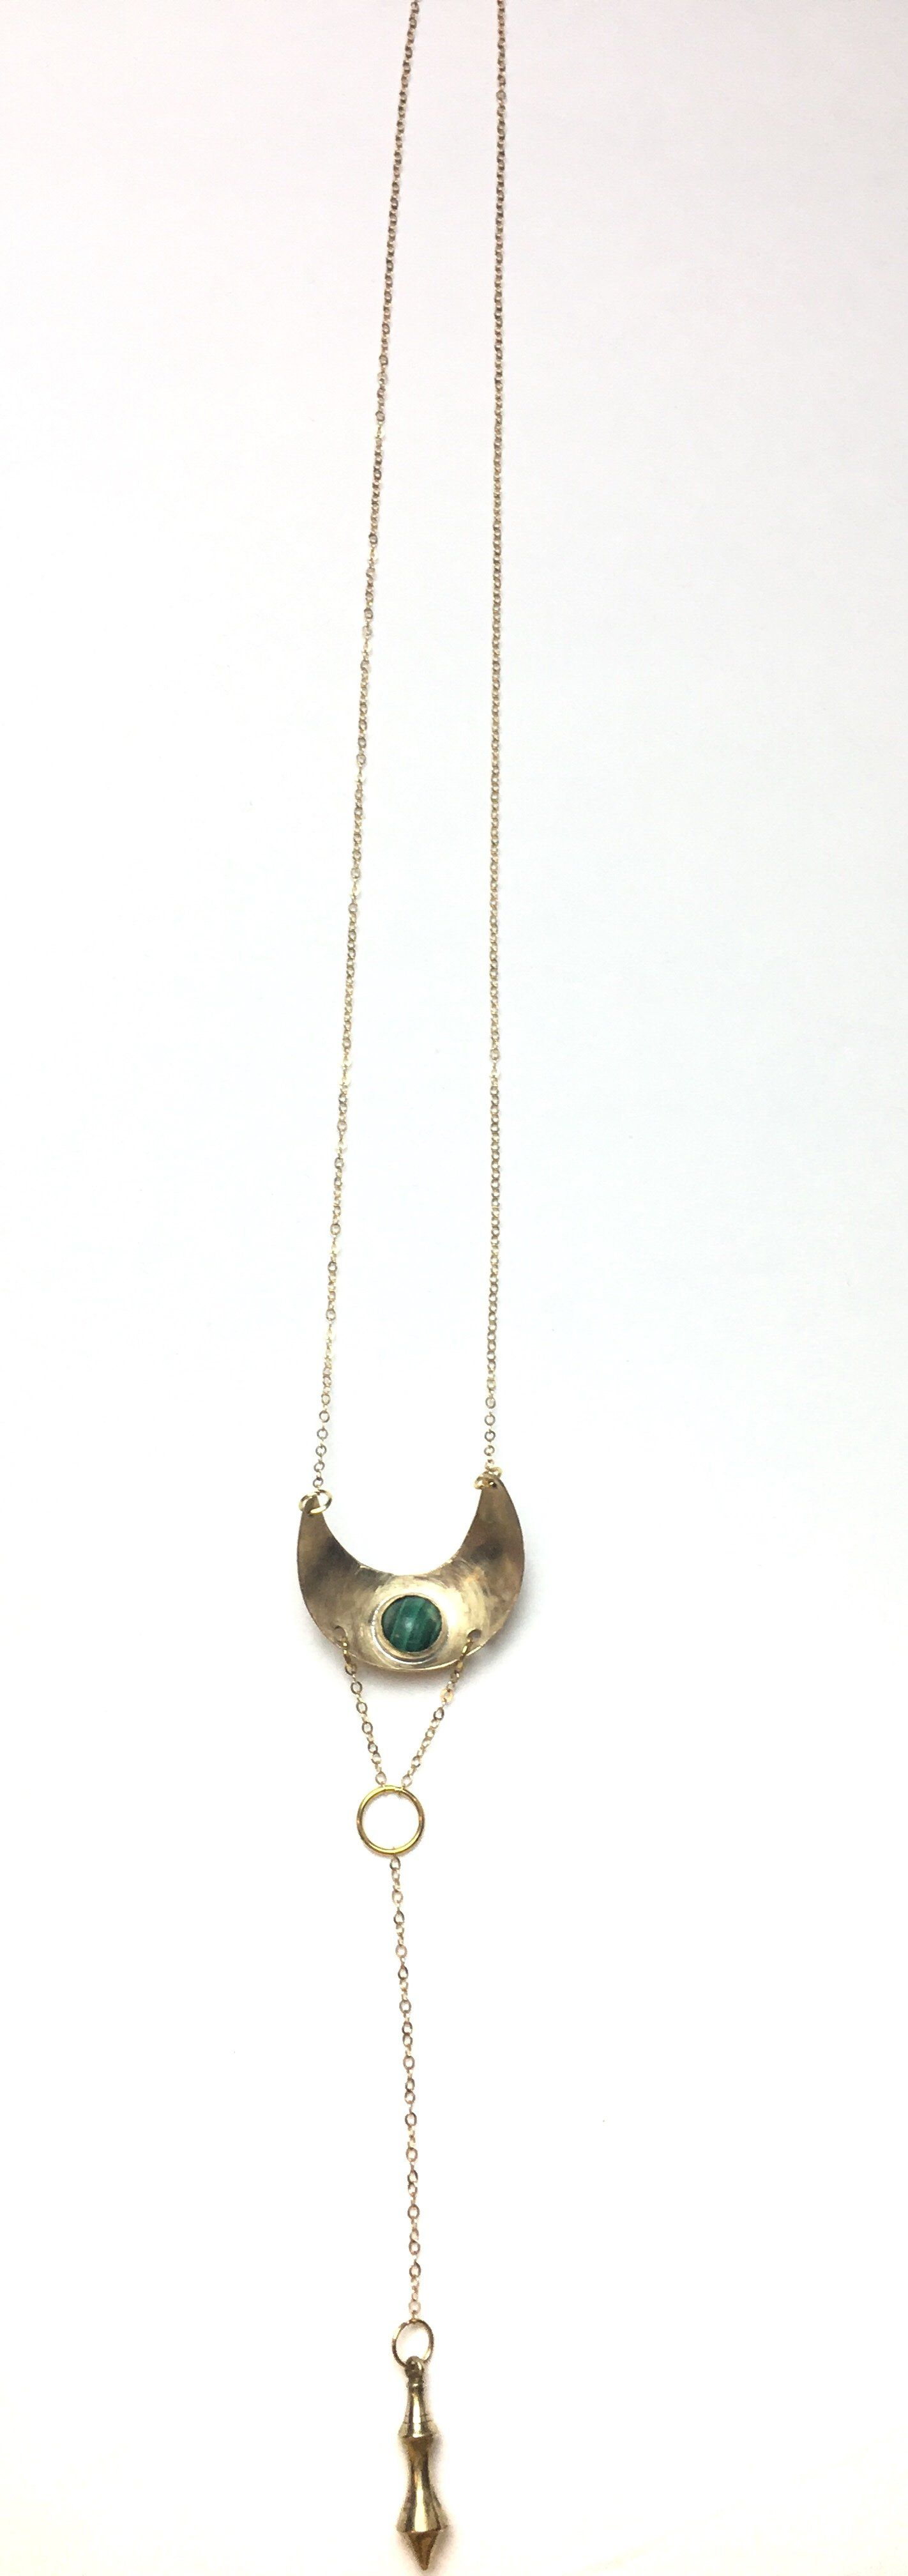 Inspired by the beauty and mystery of pendulums Made with Gold Filled chain, a Brass domed moon pendant, Malachite and Raw Brass pendulum that is plated in 14K Gold Falls above the belly button We encourage our lovers to use the Malachite Pendulum Lariat Necklace as a pendulum during a healing session or ritual. We love pendulums and their spiritual significance; they are often used as spiritual healing and inner growth tools. Pendulums promote healing with the process of dowsing, which seeks ou